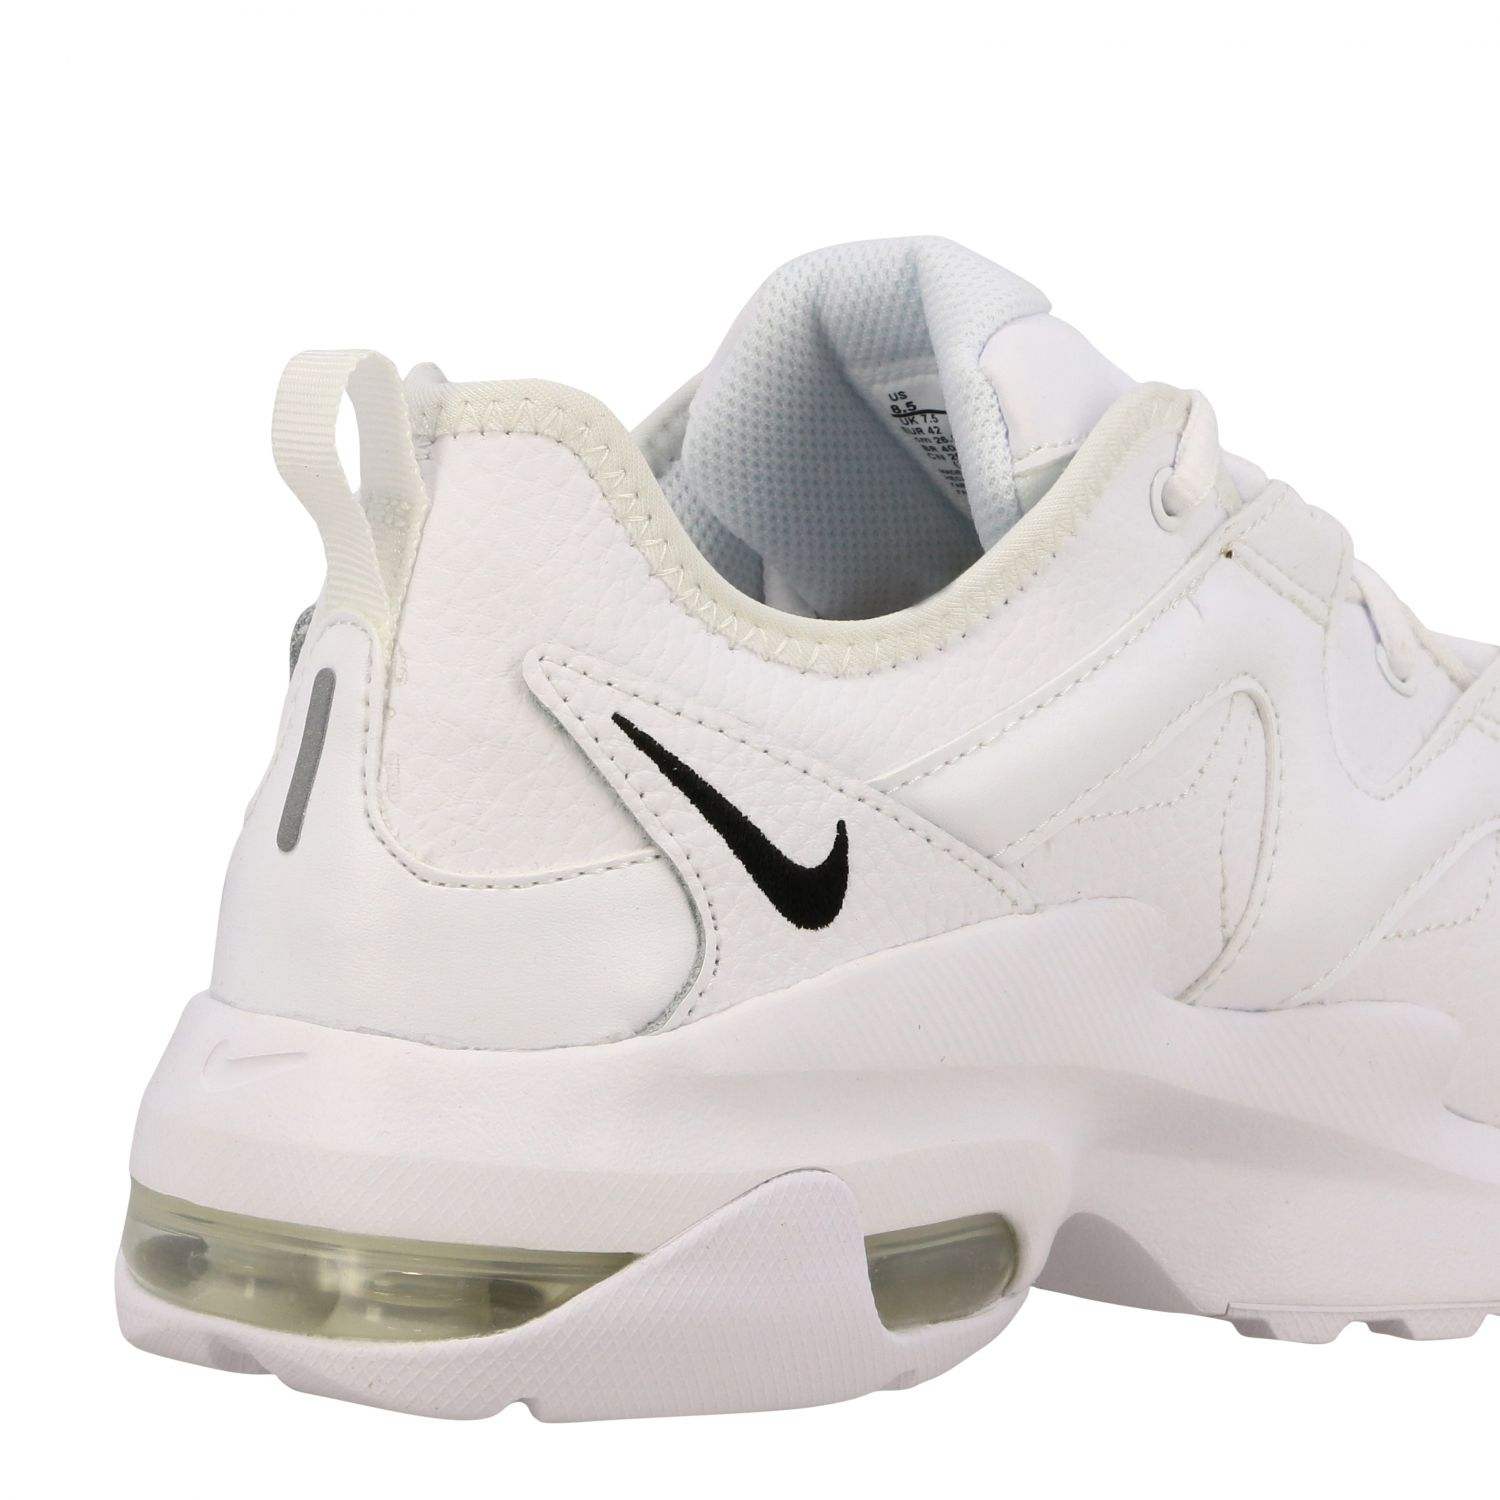 Chaussures homme Nike blanc 5